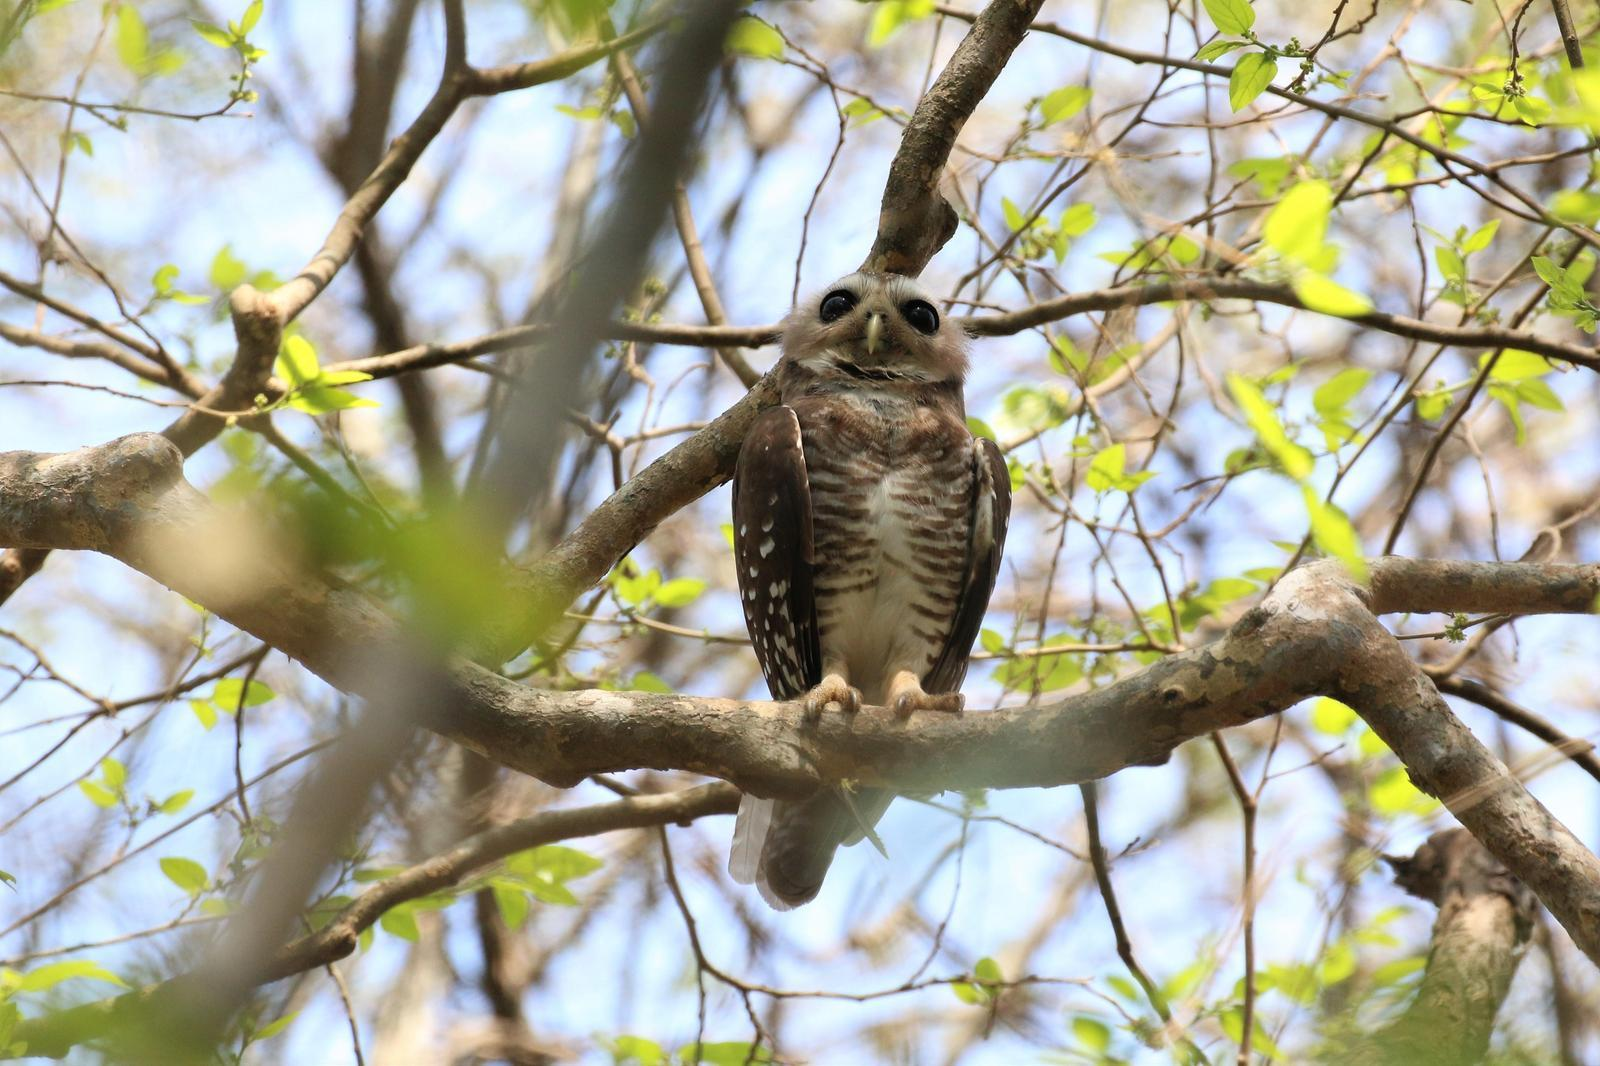 White-browed Owl Photo by Richard Jeffers